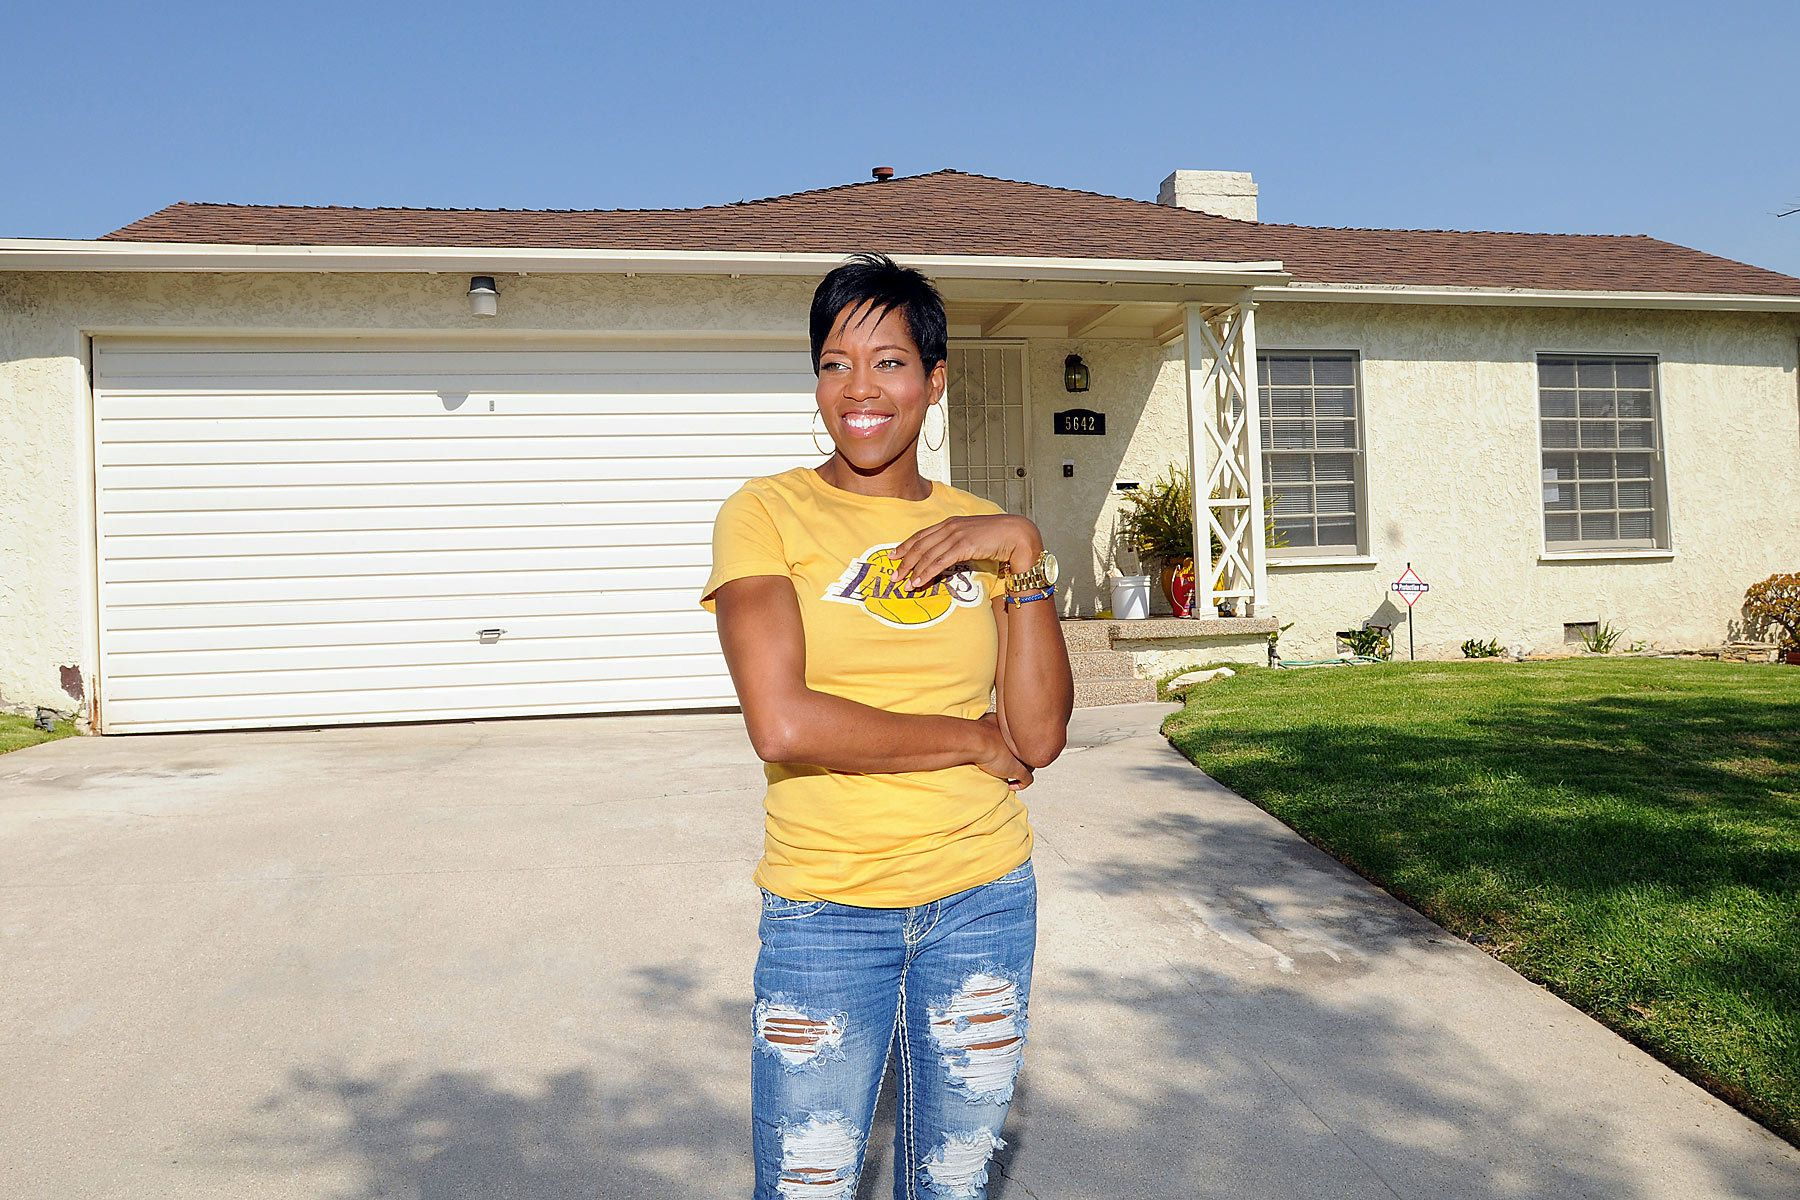 Regina King returns to her childhood turf in South Los Angeles after starring in the TV Show Southland.